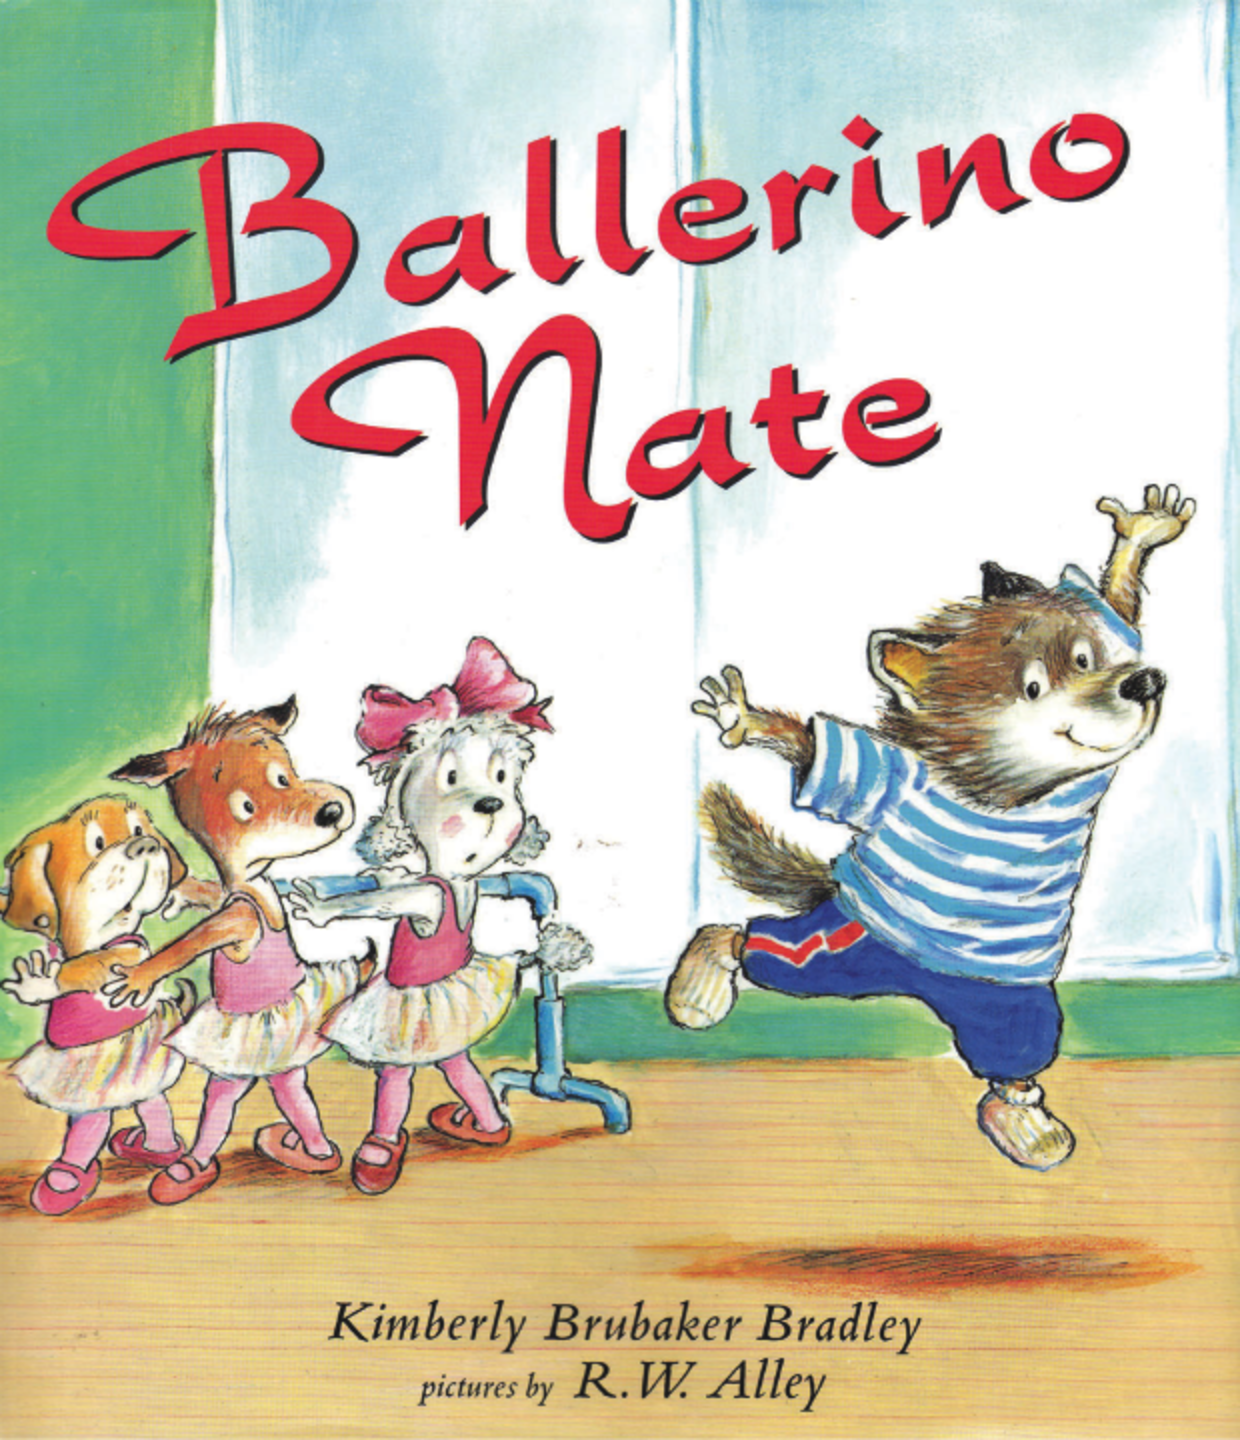 Ballerino Nate is a children's book that redefines gender roles